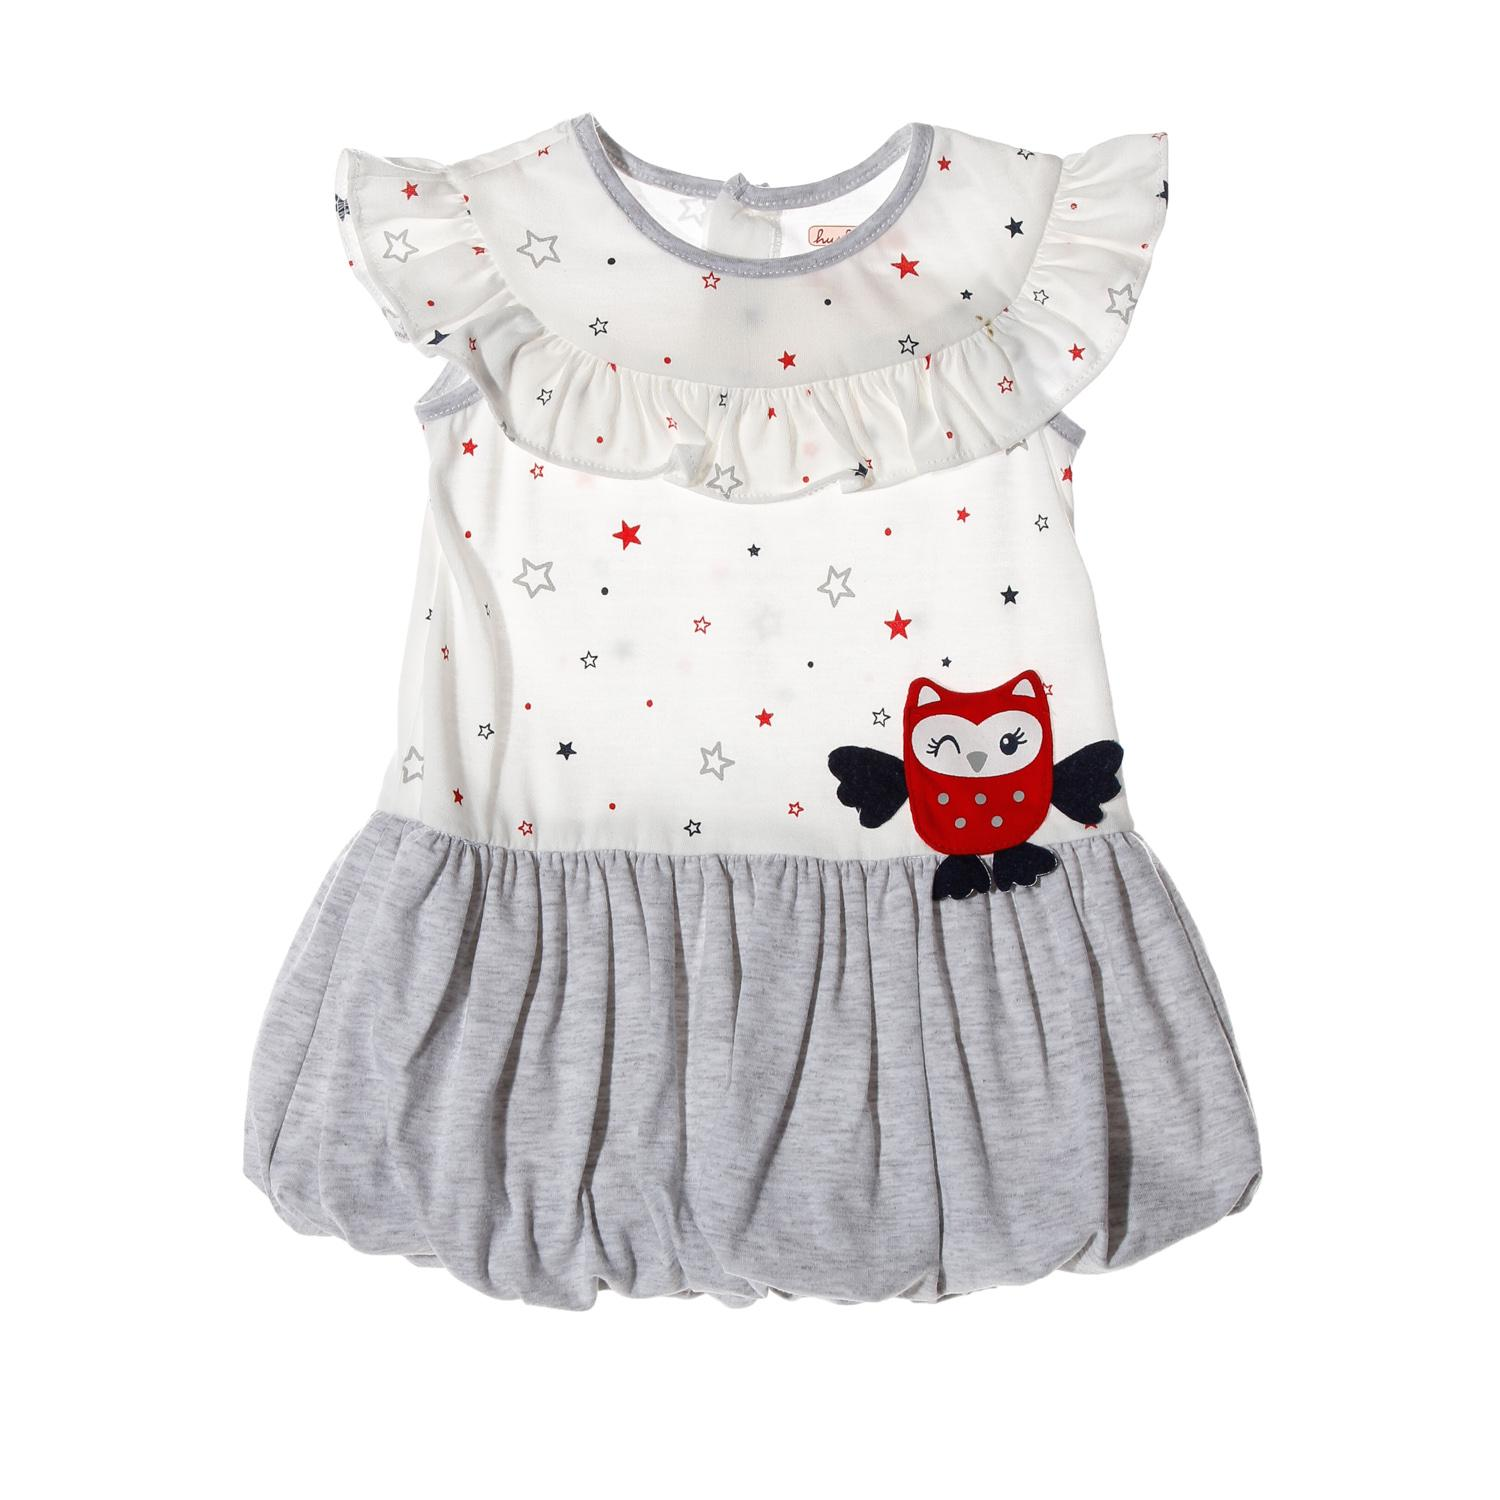 Hush Hush Baby Girls Owl Bubble Dress In White By The Sm Store.